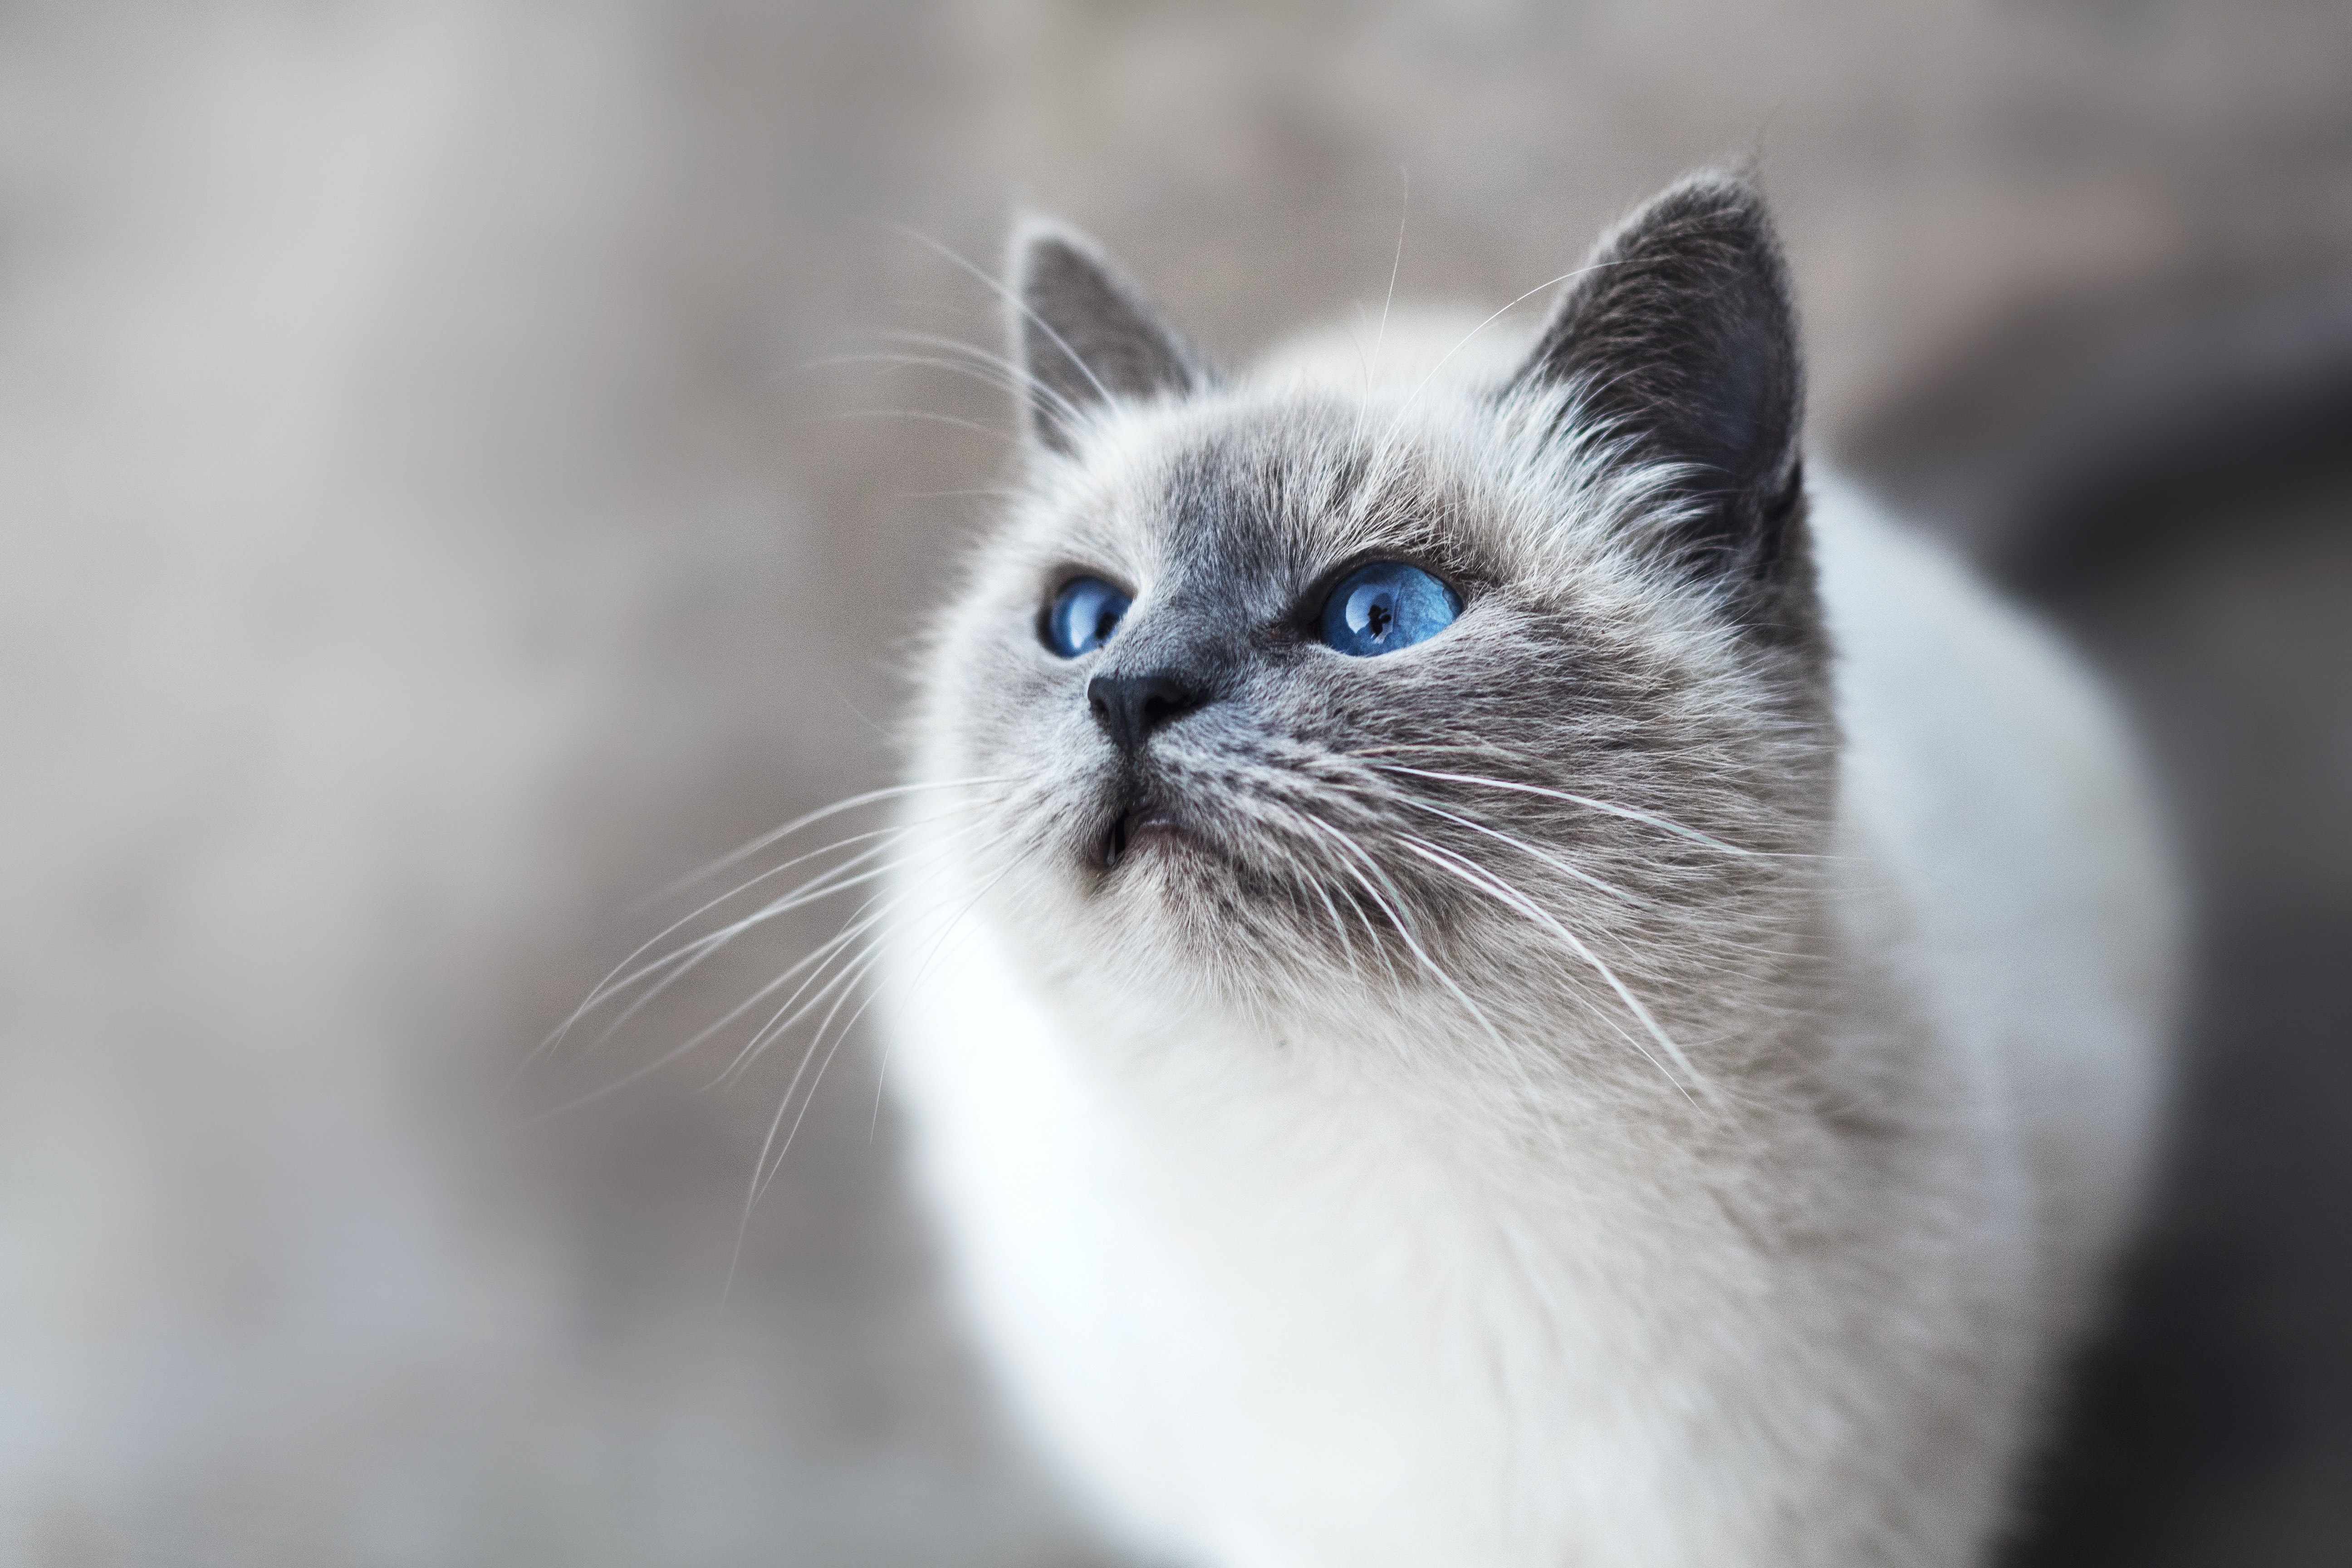 Close-up of a blue-eyed cat looking up